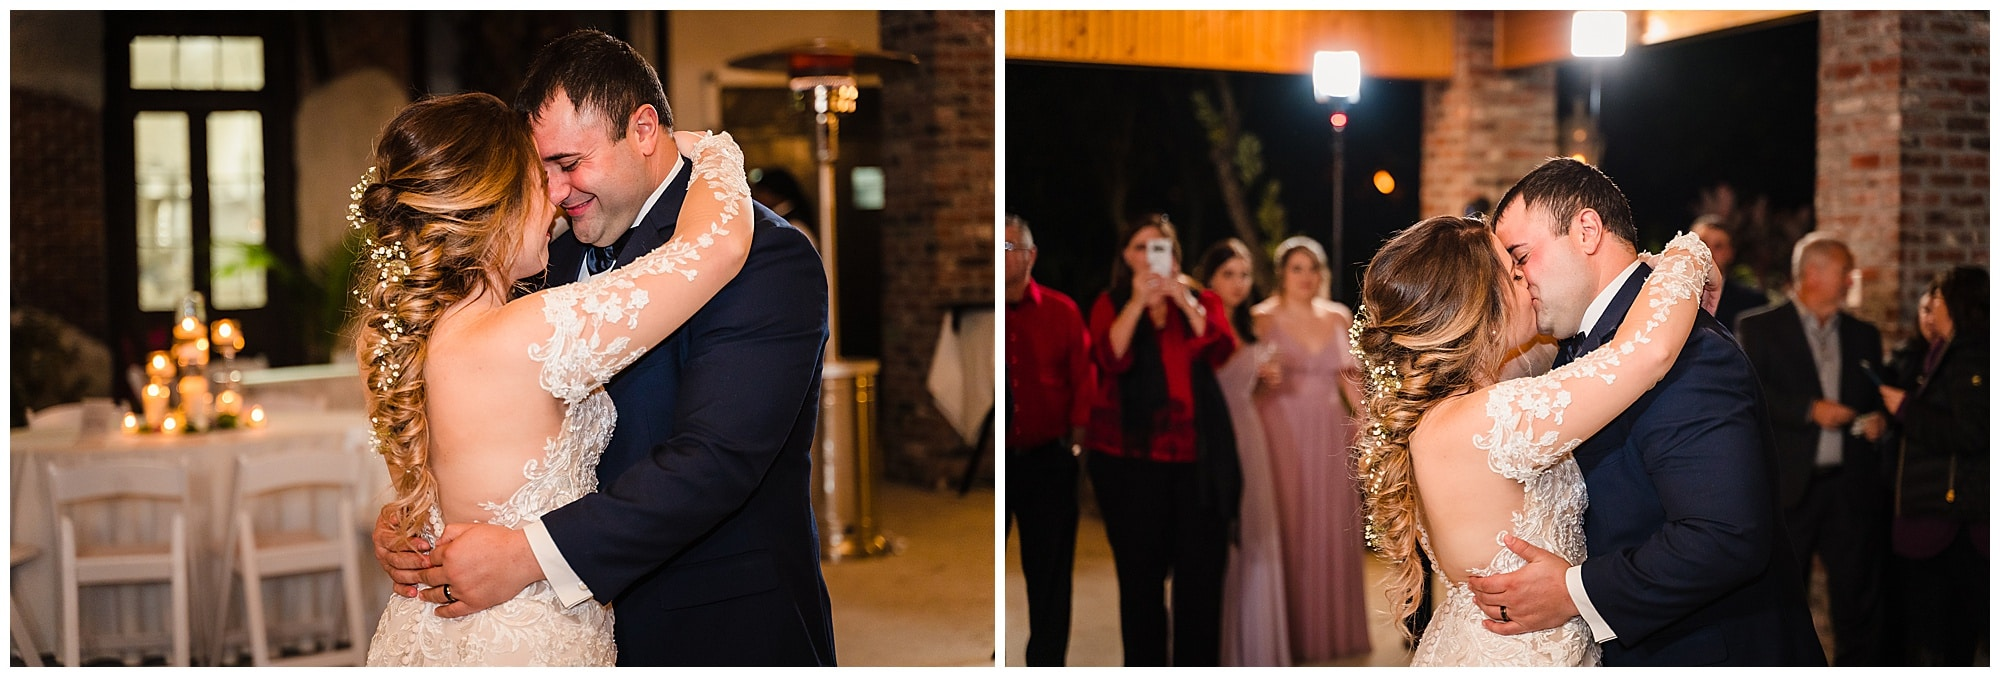 bride and groom first dance and kiss